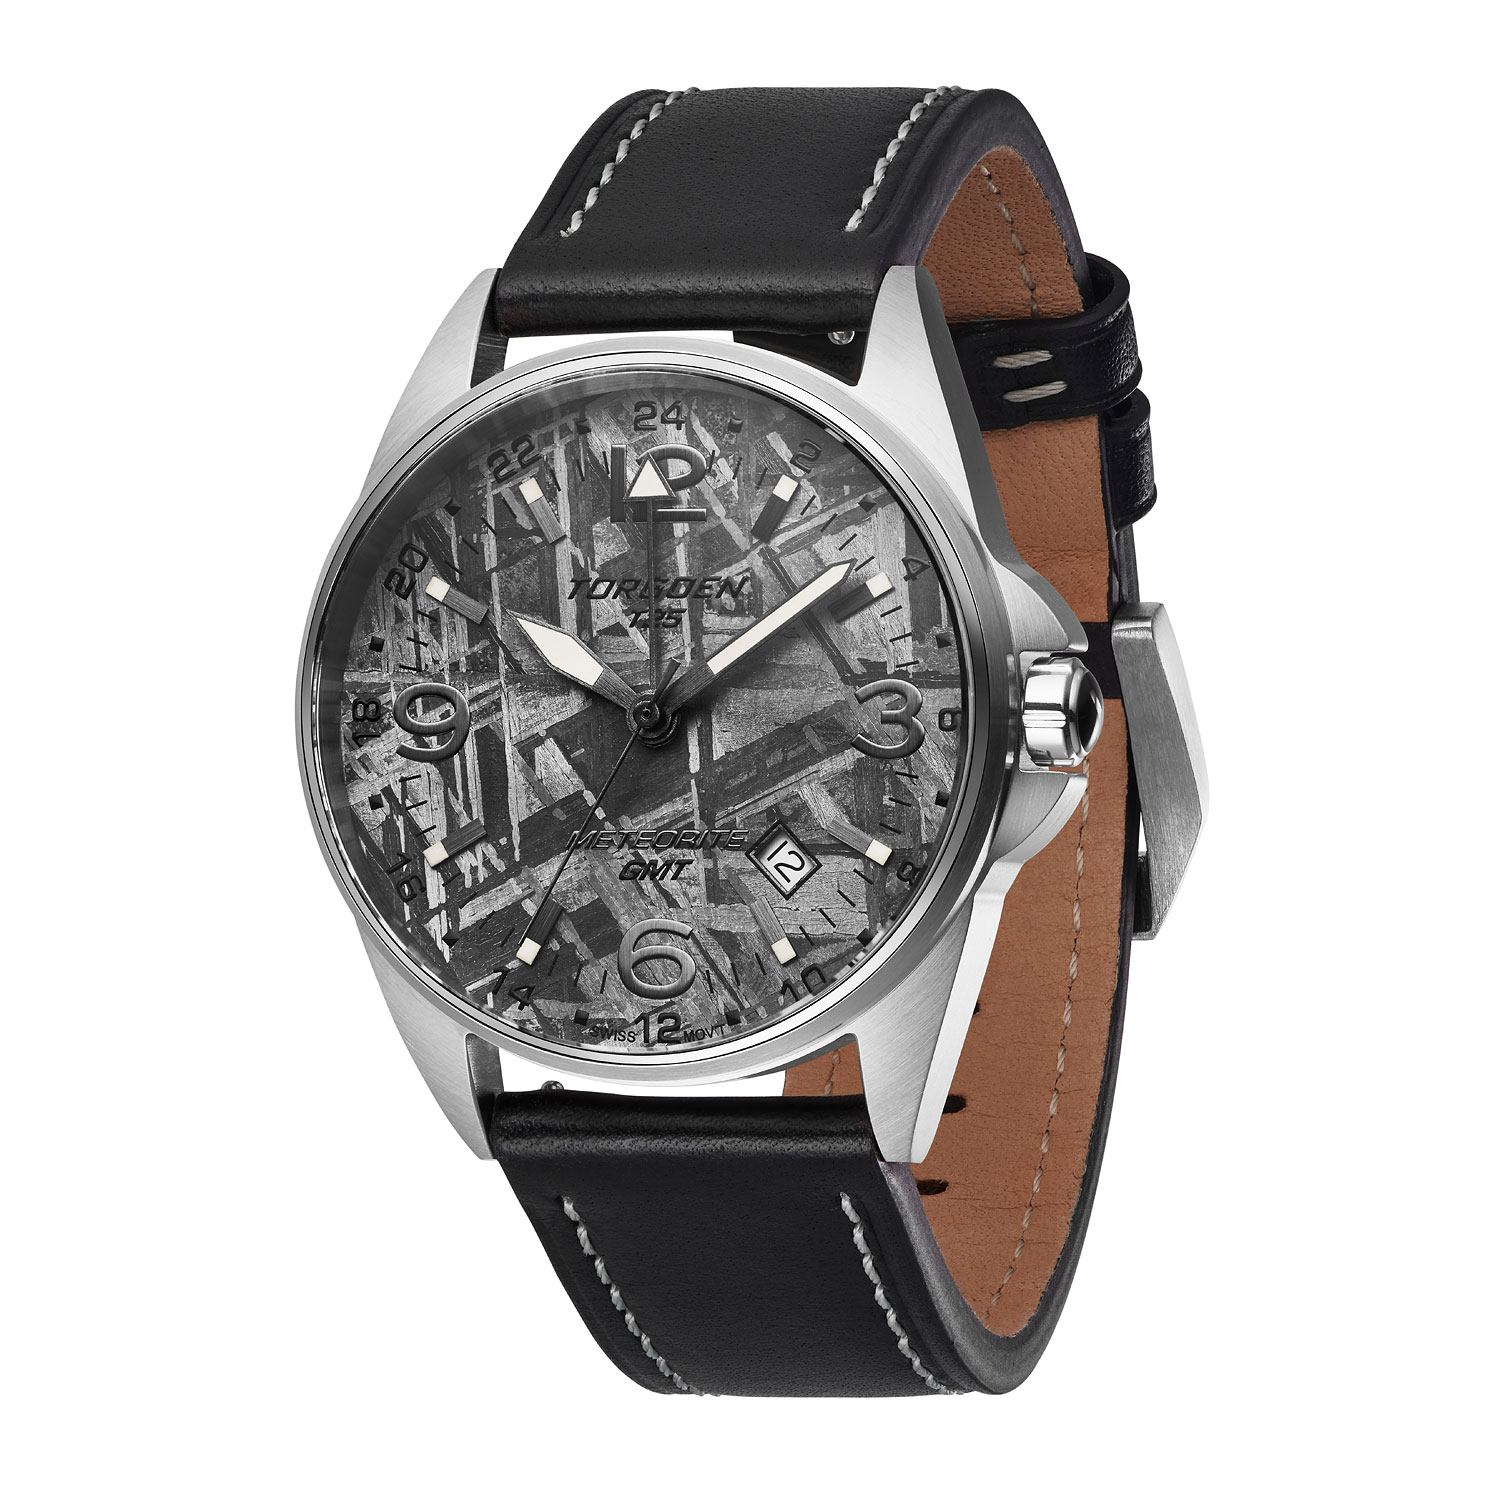 Offered in three style variations, all featuring genuine Italian leather straps and luminescent digits and markers for ease of read, the Torgoen T25 Meteorite weighs in at 2.9 oz with a case thickness of 12.5 mm for a slim, light feel.